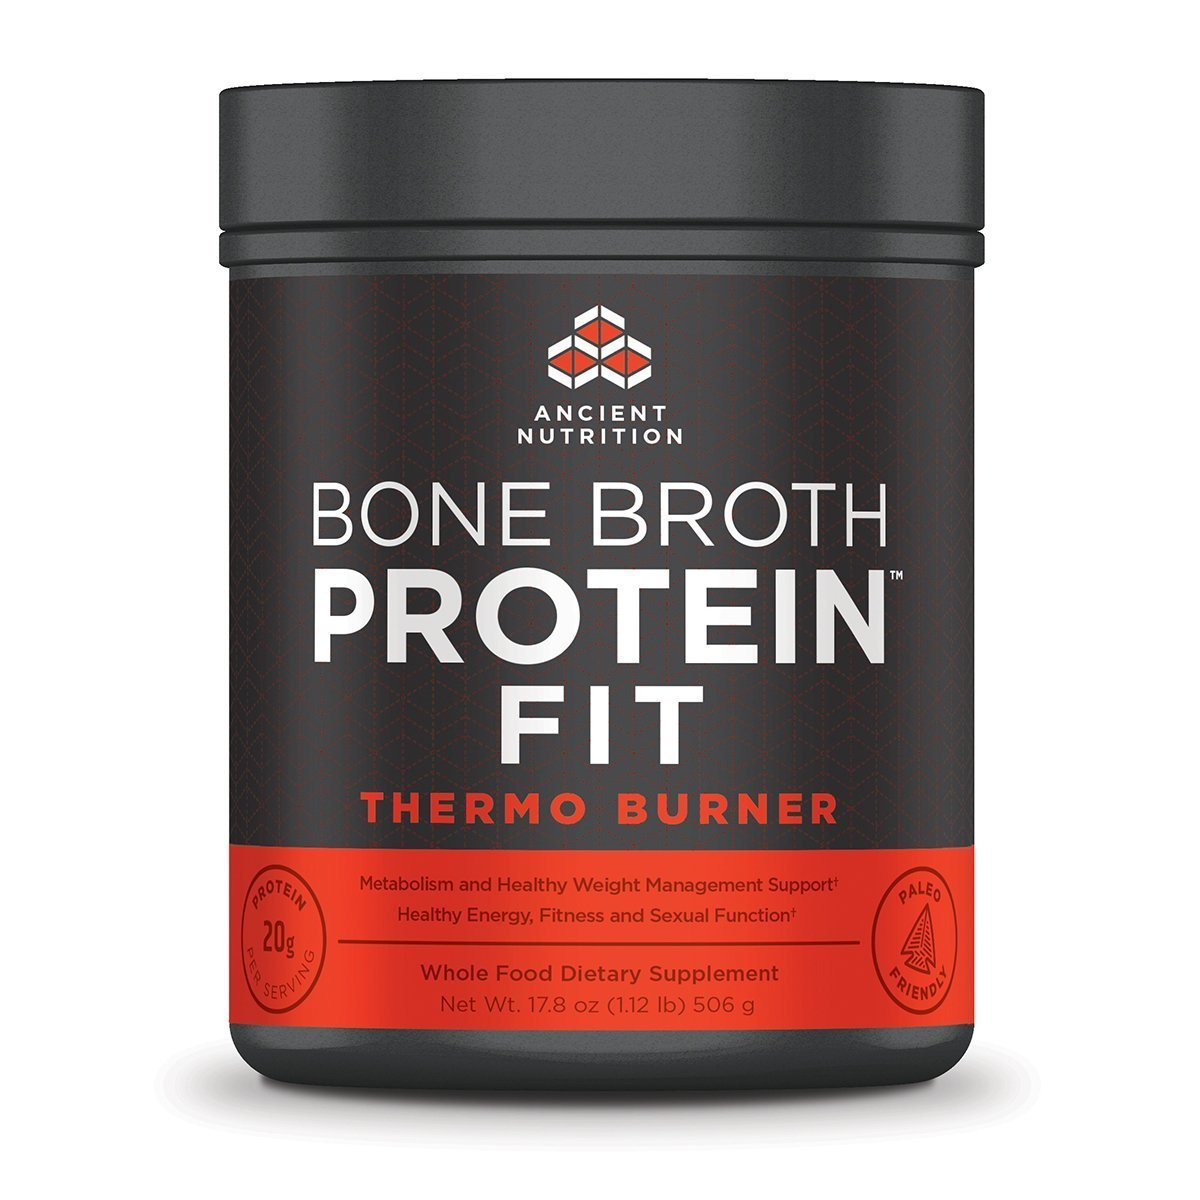 Ancient Nutrition Bone Broth Protein Fit Thermo Burner 20 Servings Diet/Energy Ancient Nutrition  (1059284779051)